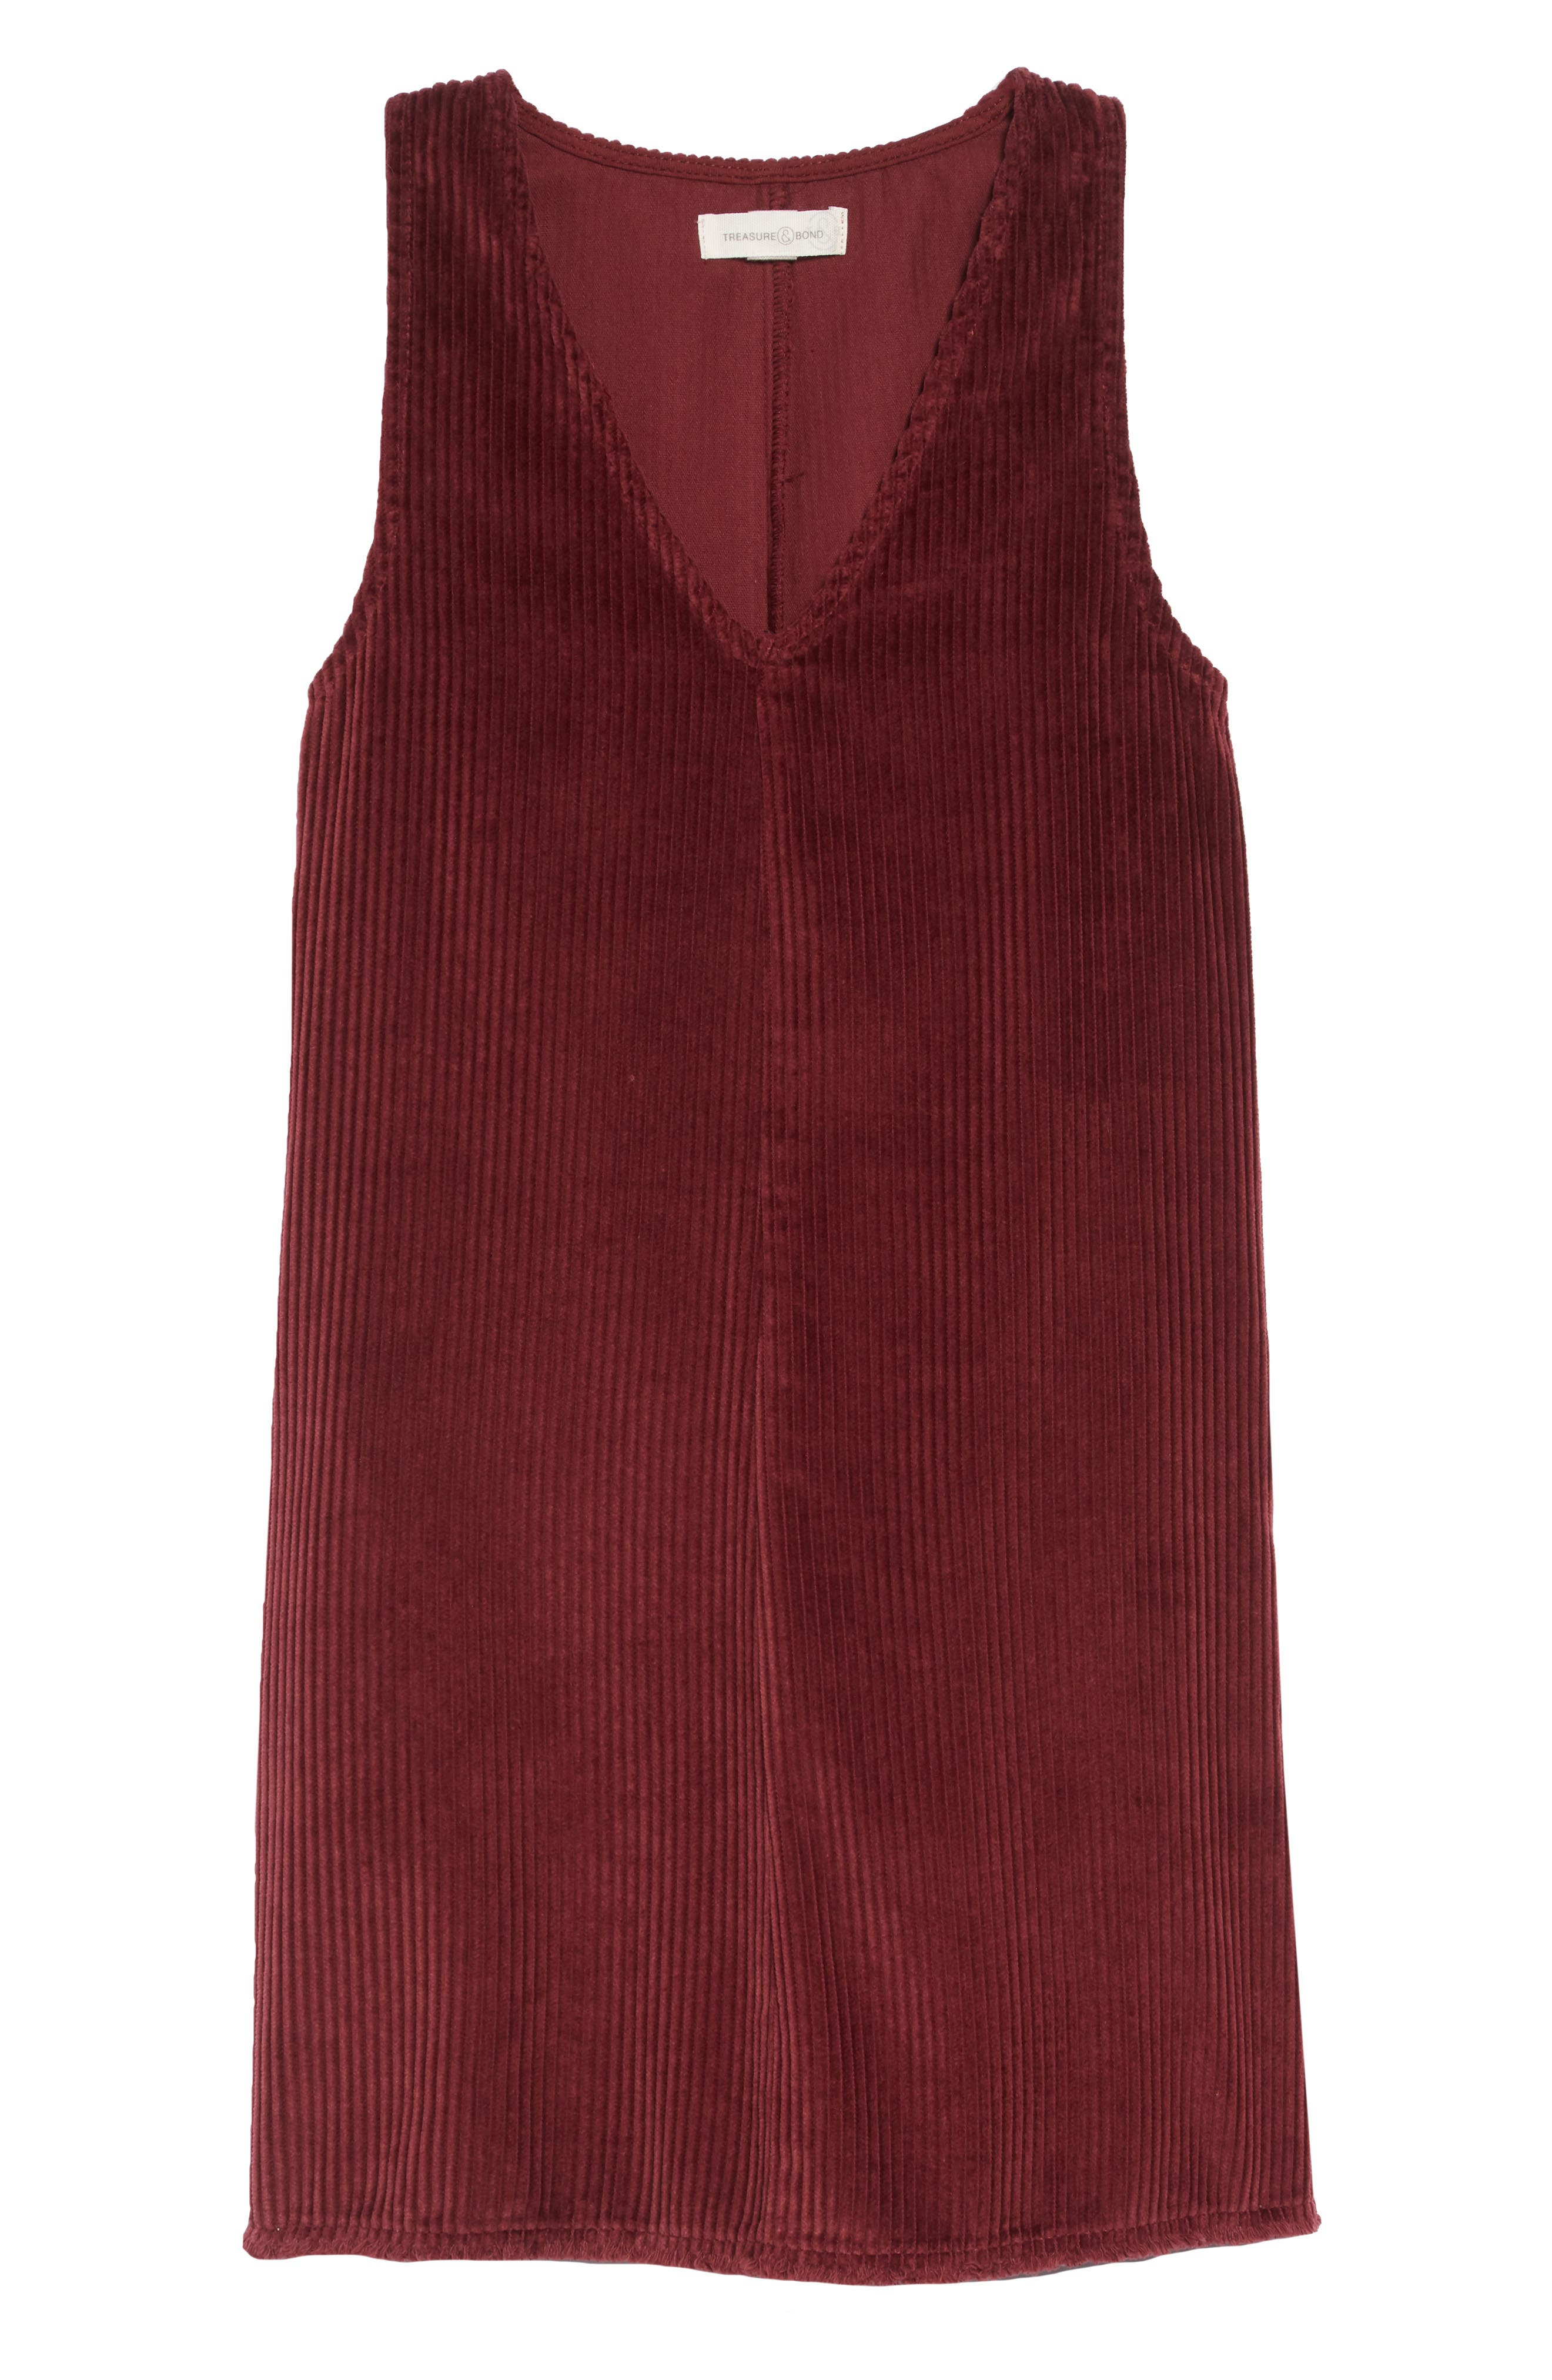 Corduroy Jumper Dress,                             Main thumbnail 1, color,                             RED TANNIN